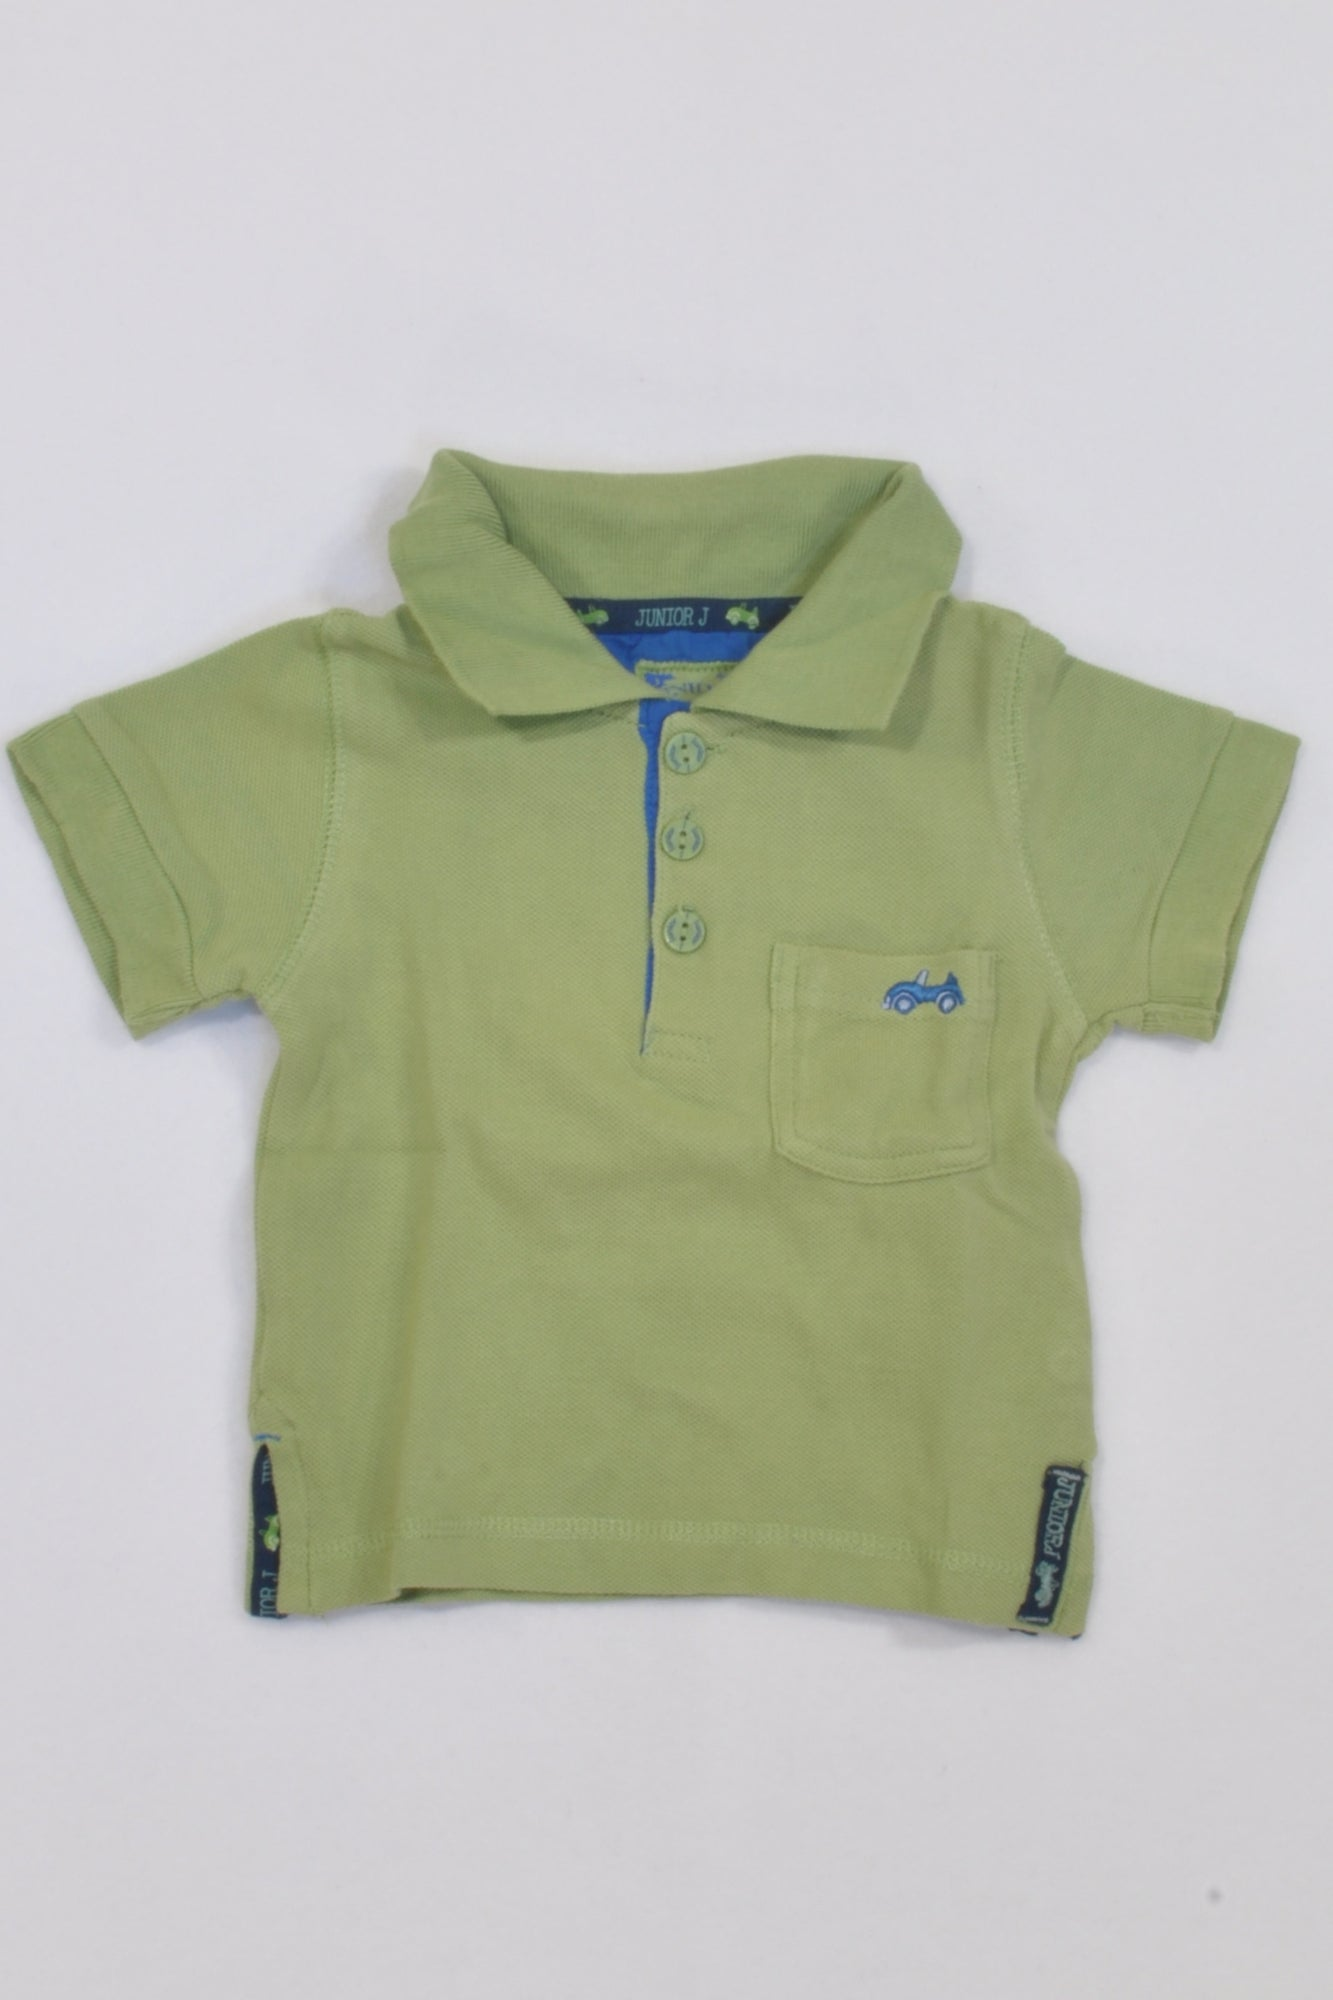 Junior J Green Golf Shirt Boys 9-12 months